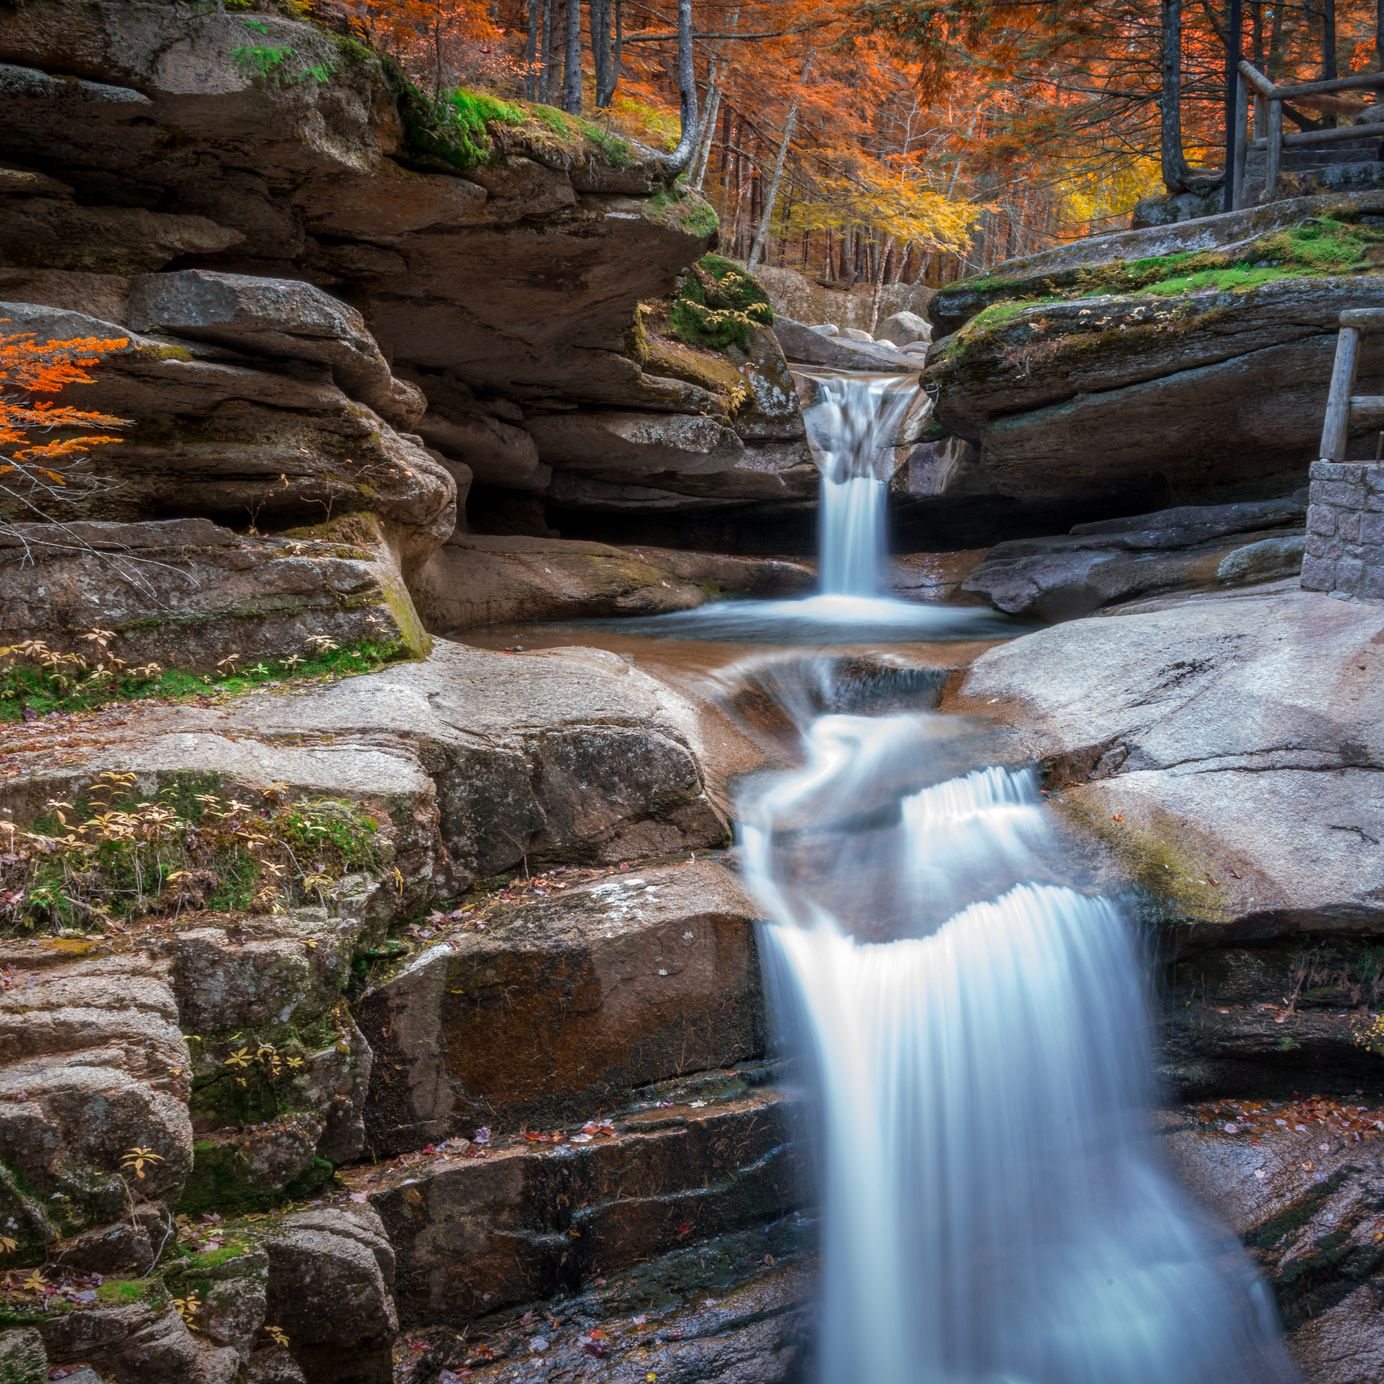 A Tour of New Hampshire Waterfalls